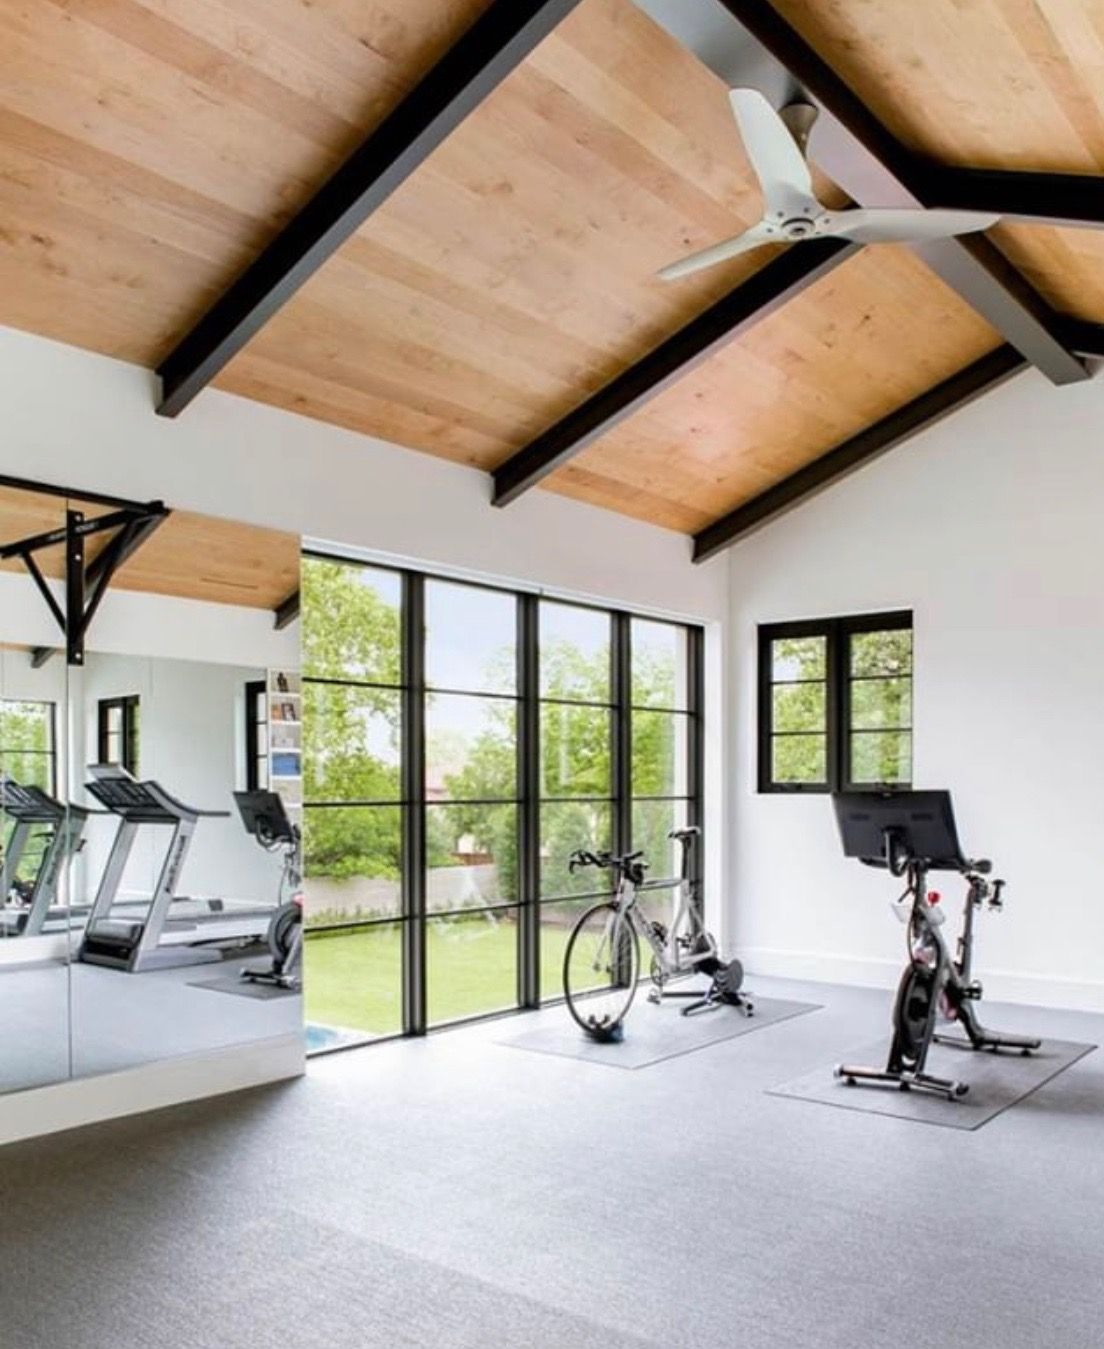 Home Gym Design Ideas: Home Gym Design By Allen Mason On Axminster